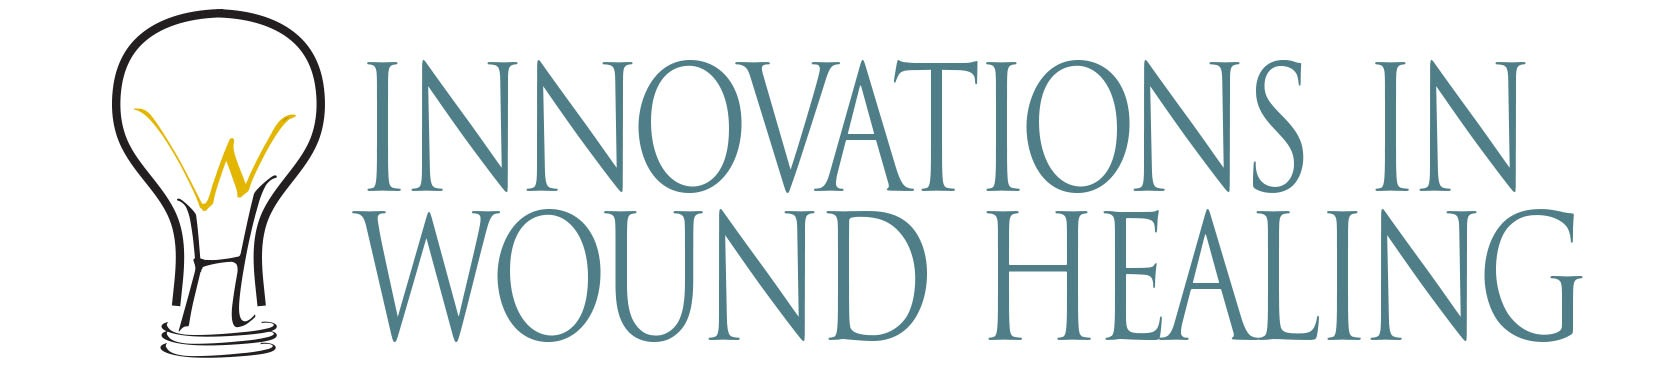 2019 INNOVATIONS IN WOUND HEALING